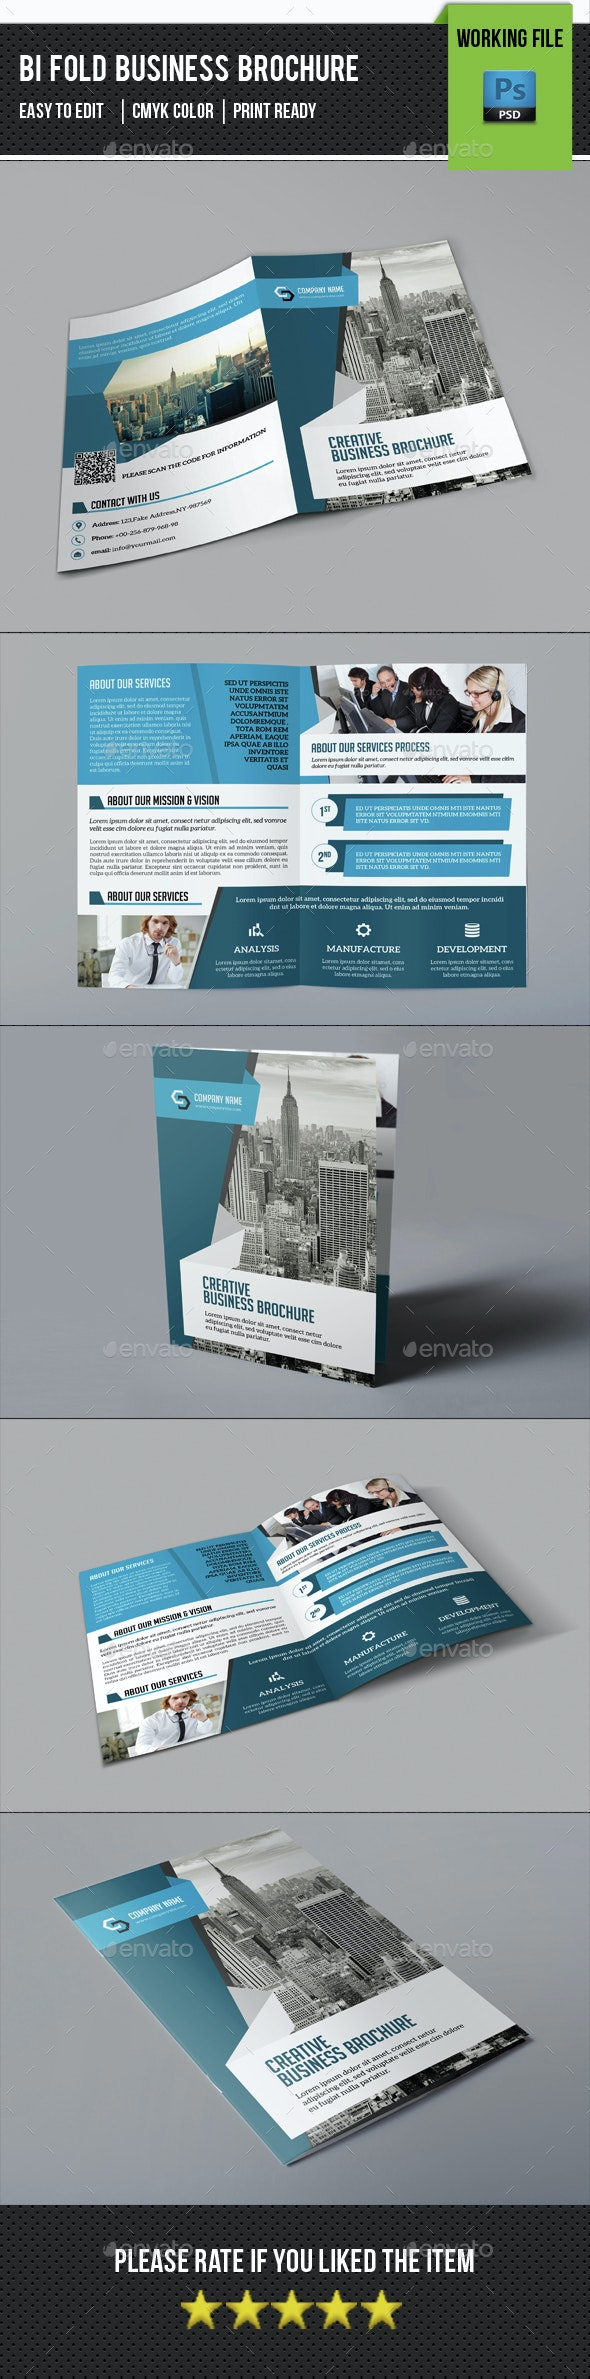 Corporate Bifold Brochure-V370 - Corporate Brochures